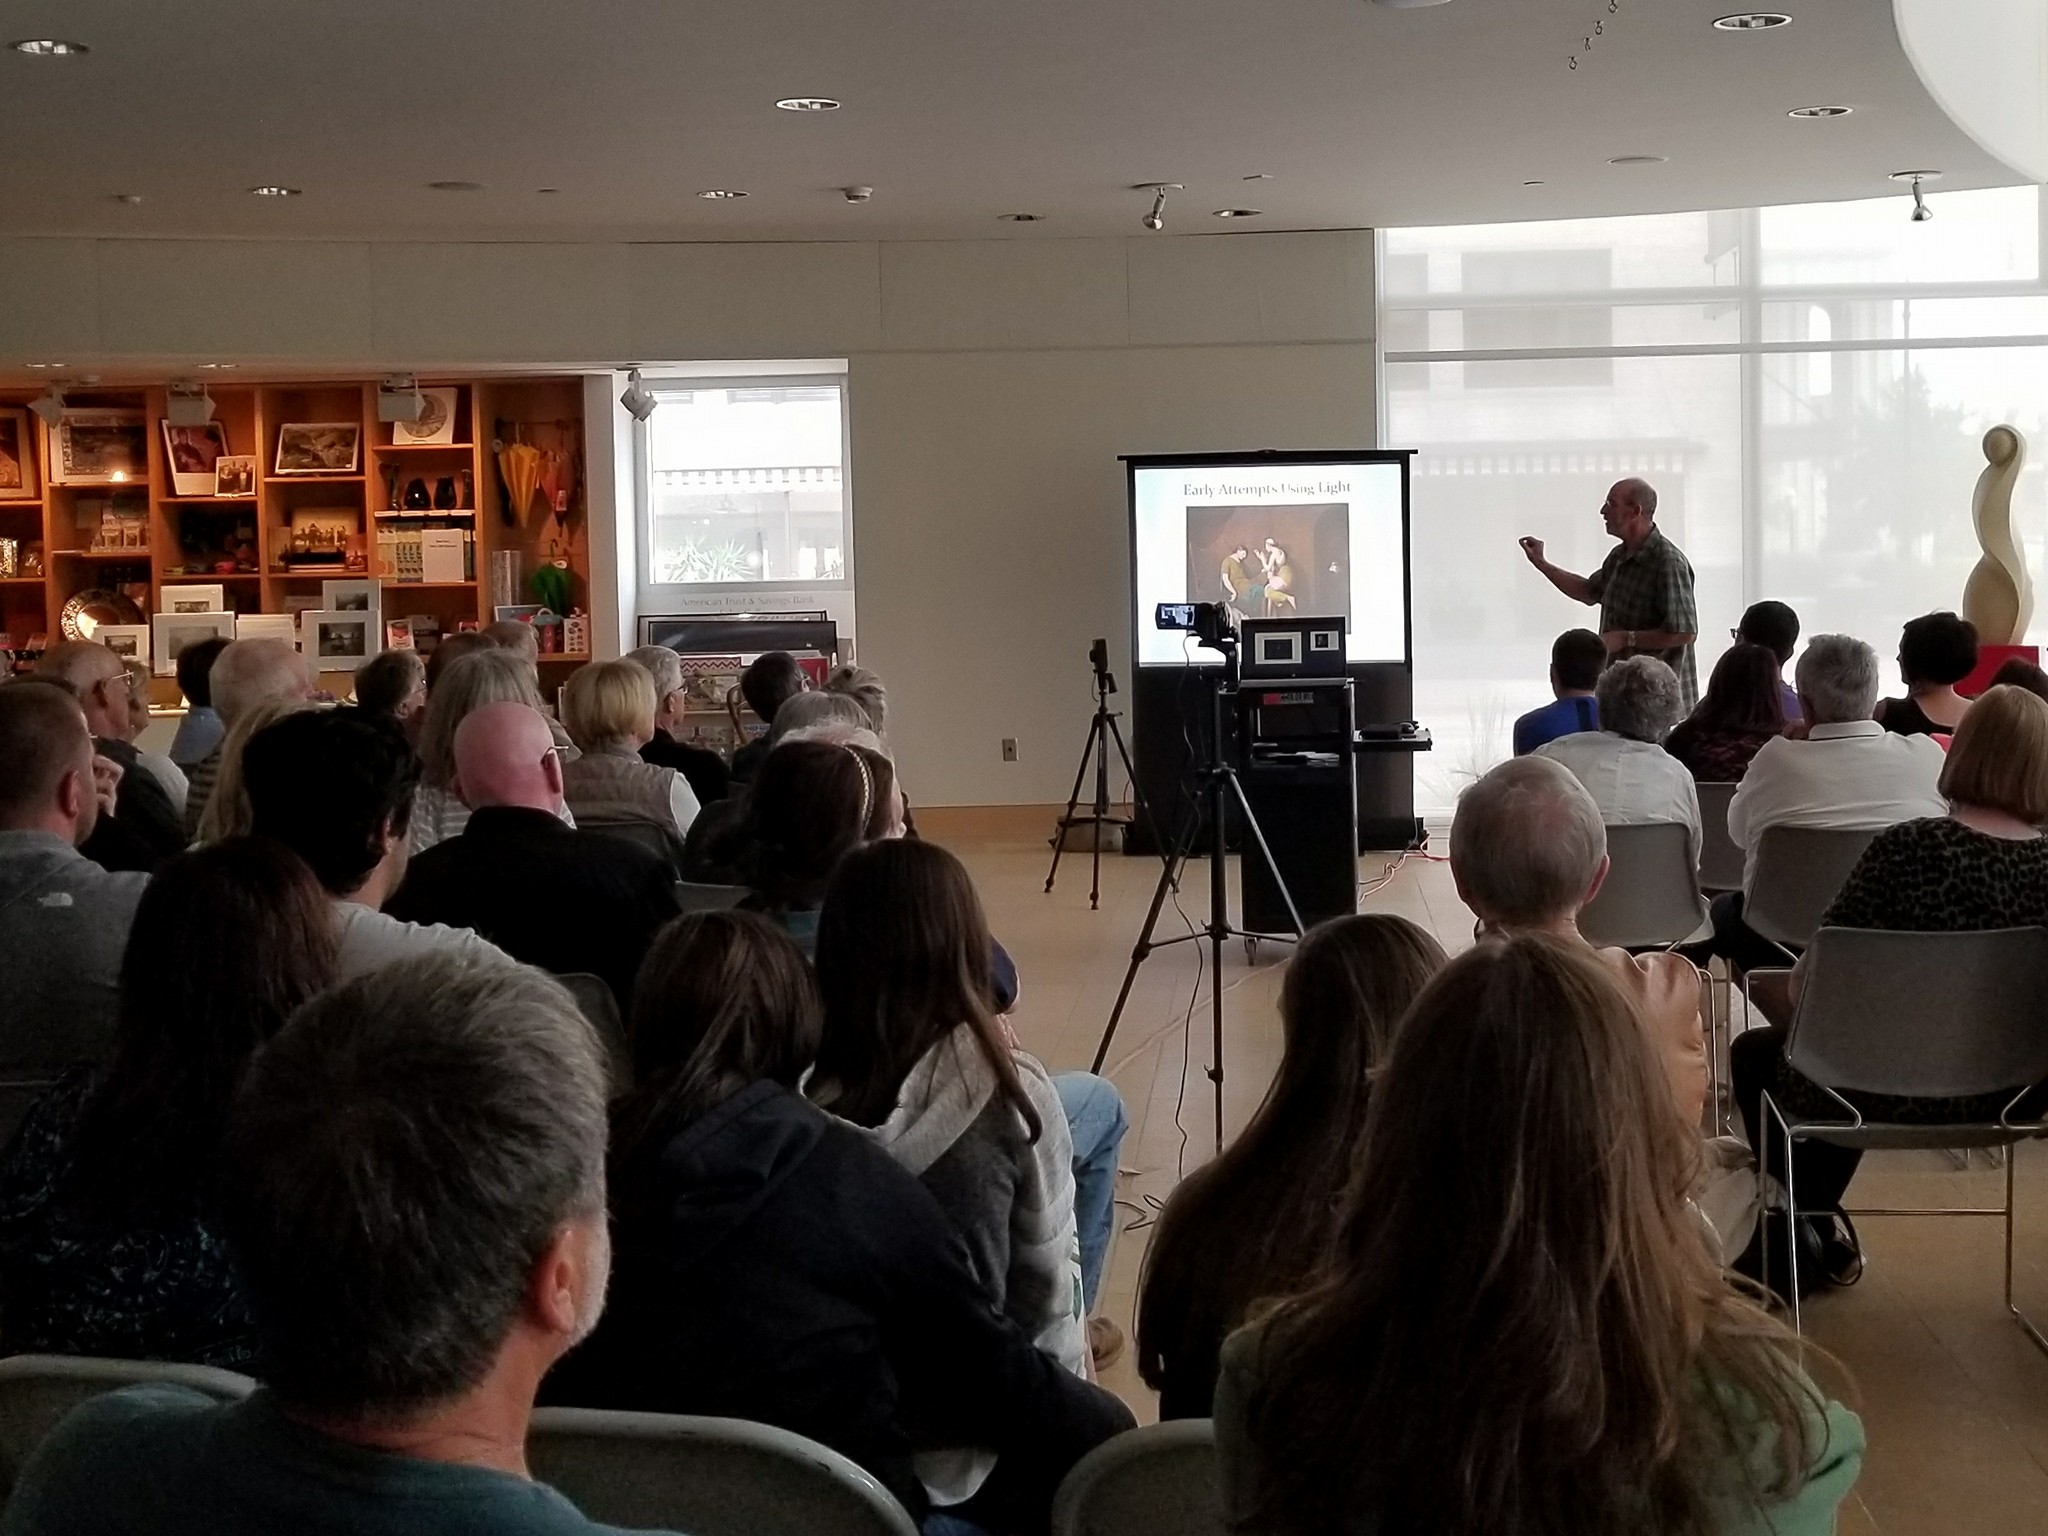 Photographer Mark James presents a lecture about his work.